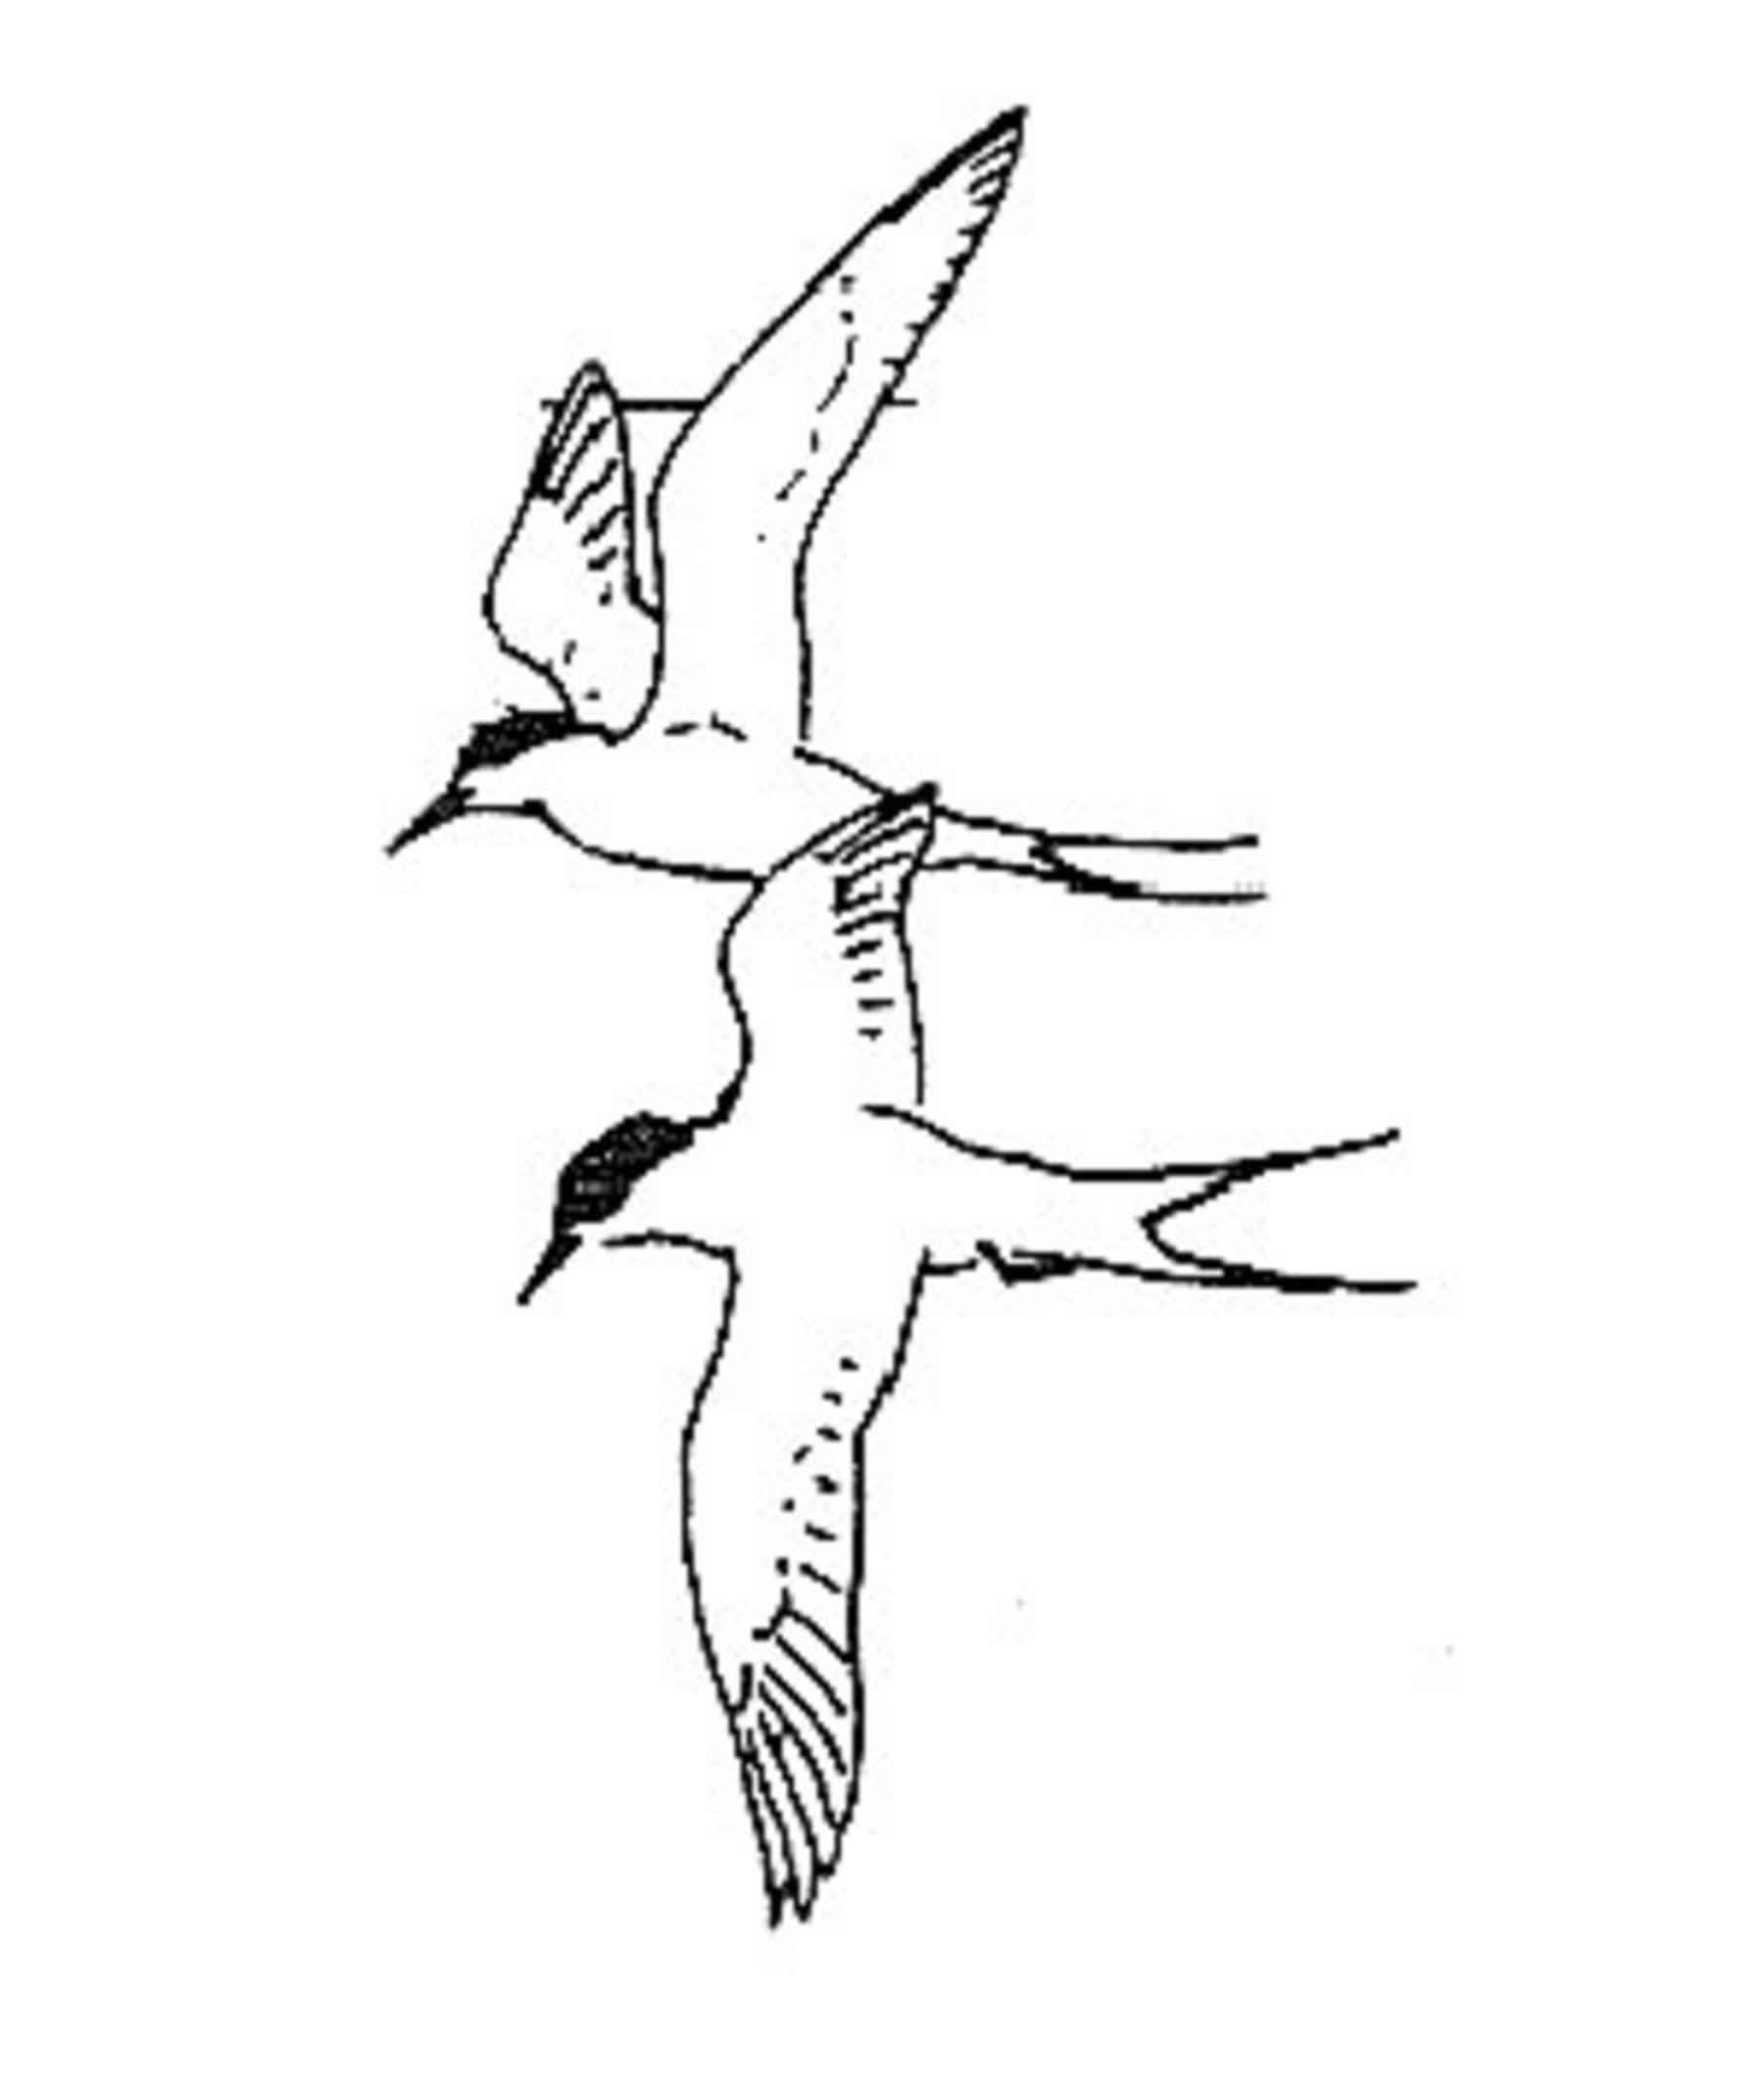 Black And White Line Art : File black and white line art of two arctic terns g